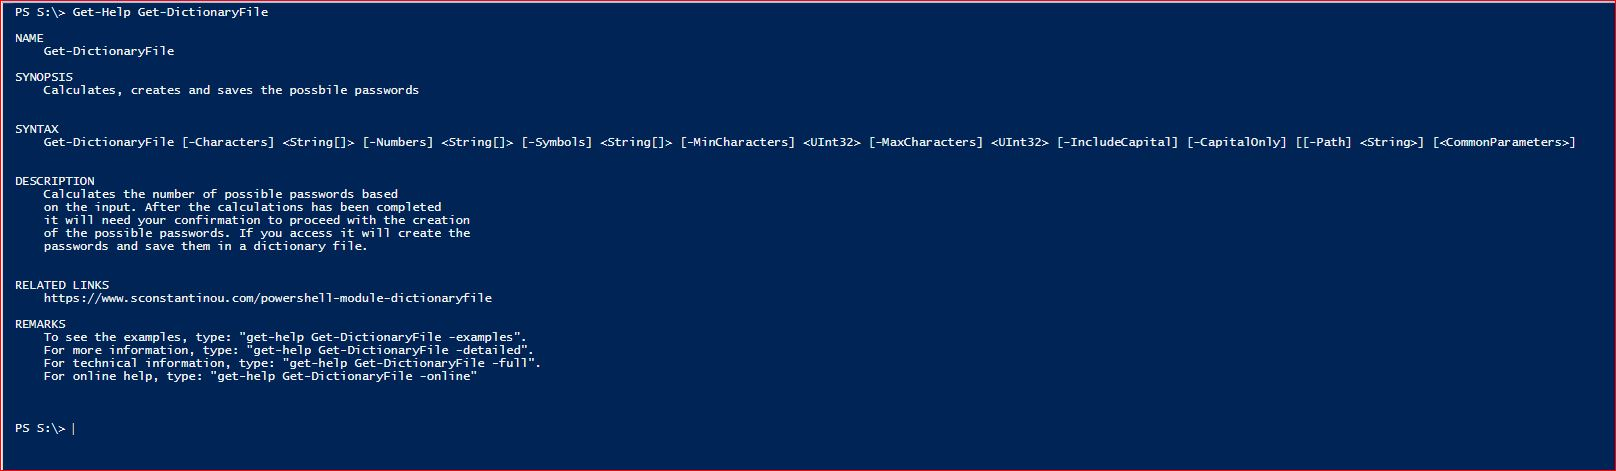 PowerShell Module DictionaryFile